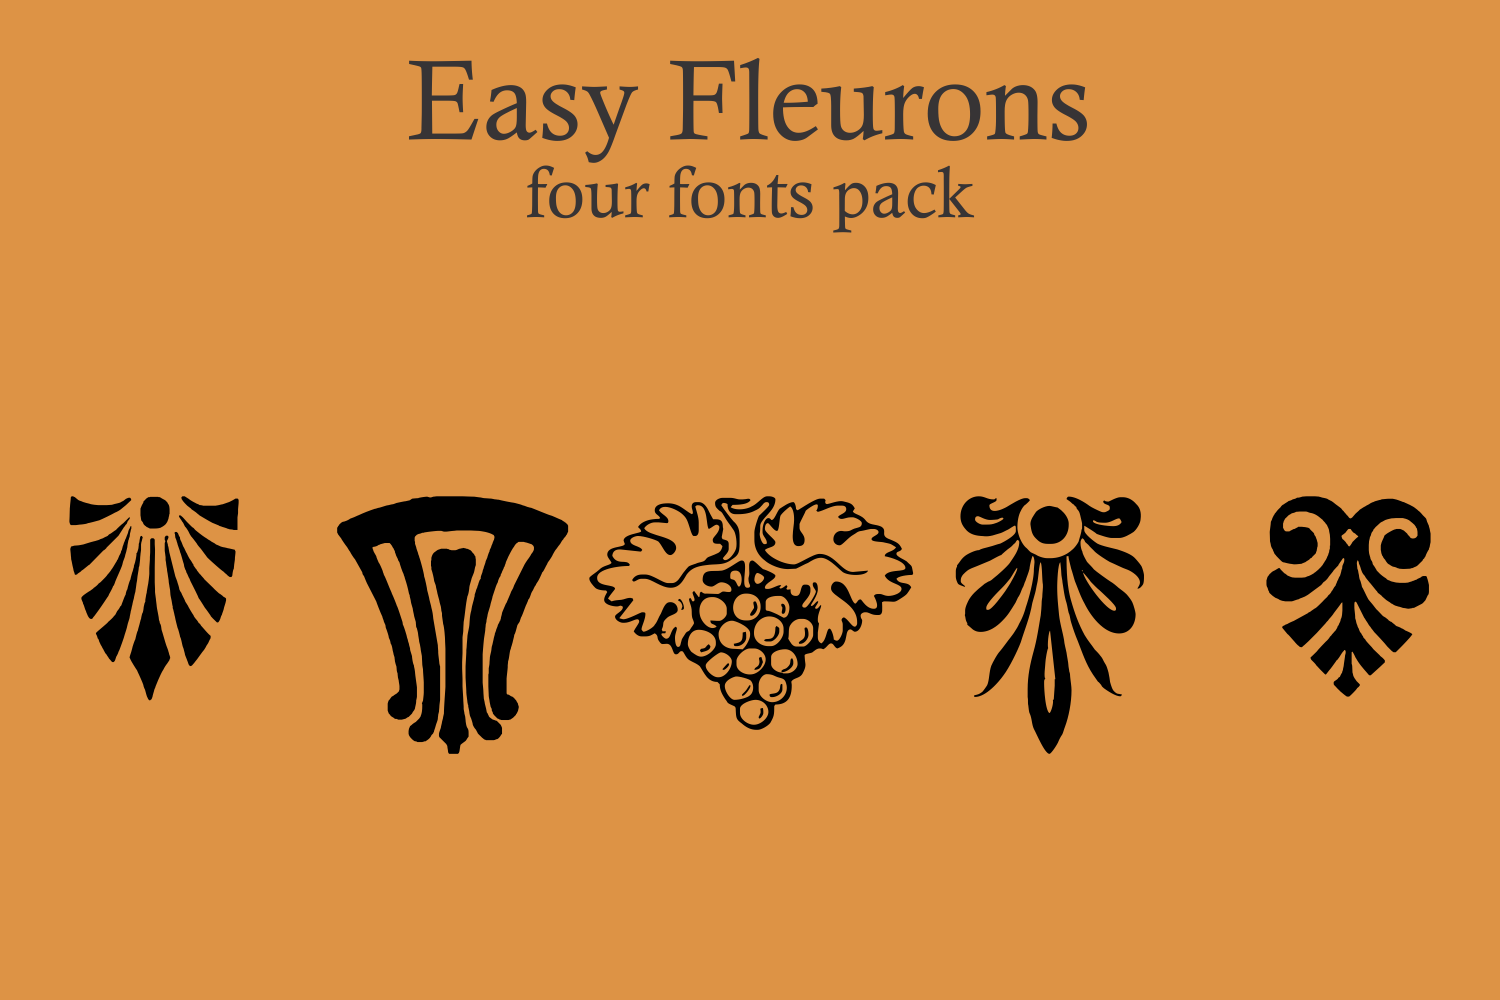 Easy Fleurons Pack (four fonts) example image 2